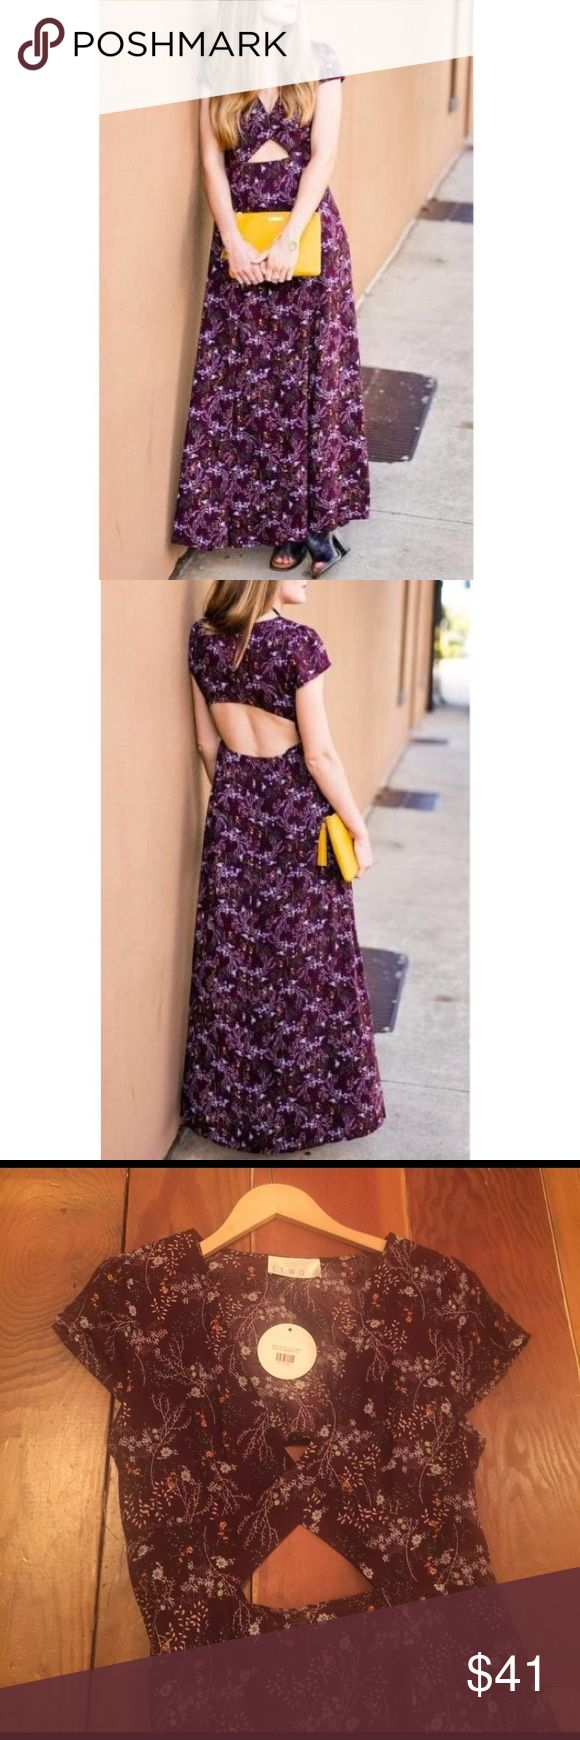 NEW gorgeous pattern maxi dress Great for a wedding or just a night out on the town- maxi dress with skin showing at peak in the front and fabulous open back with side slits up the side. Size L. Brand new, never been worn. Dresses Maxi